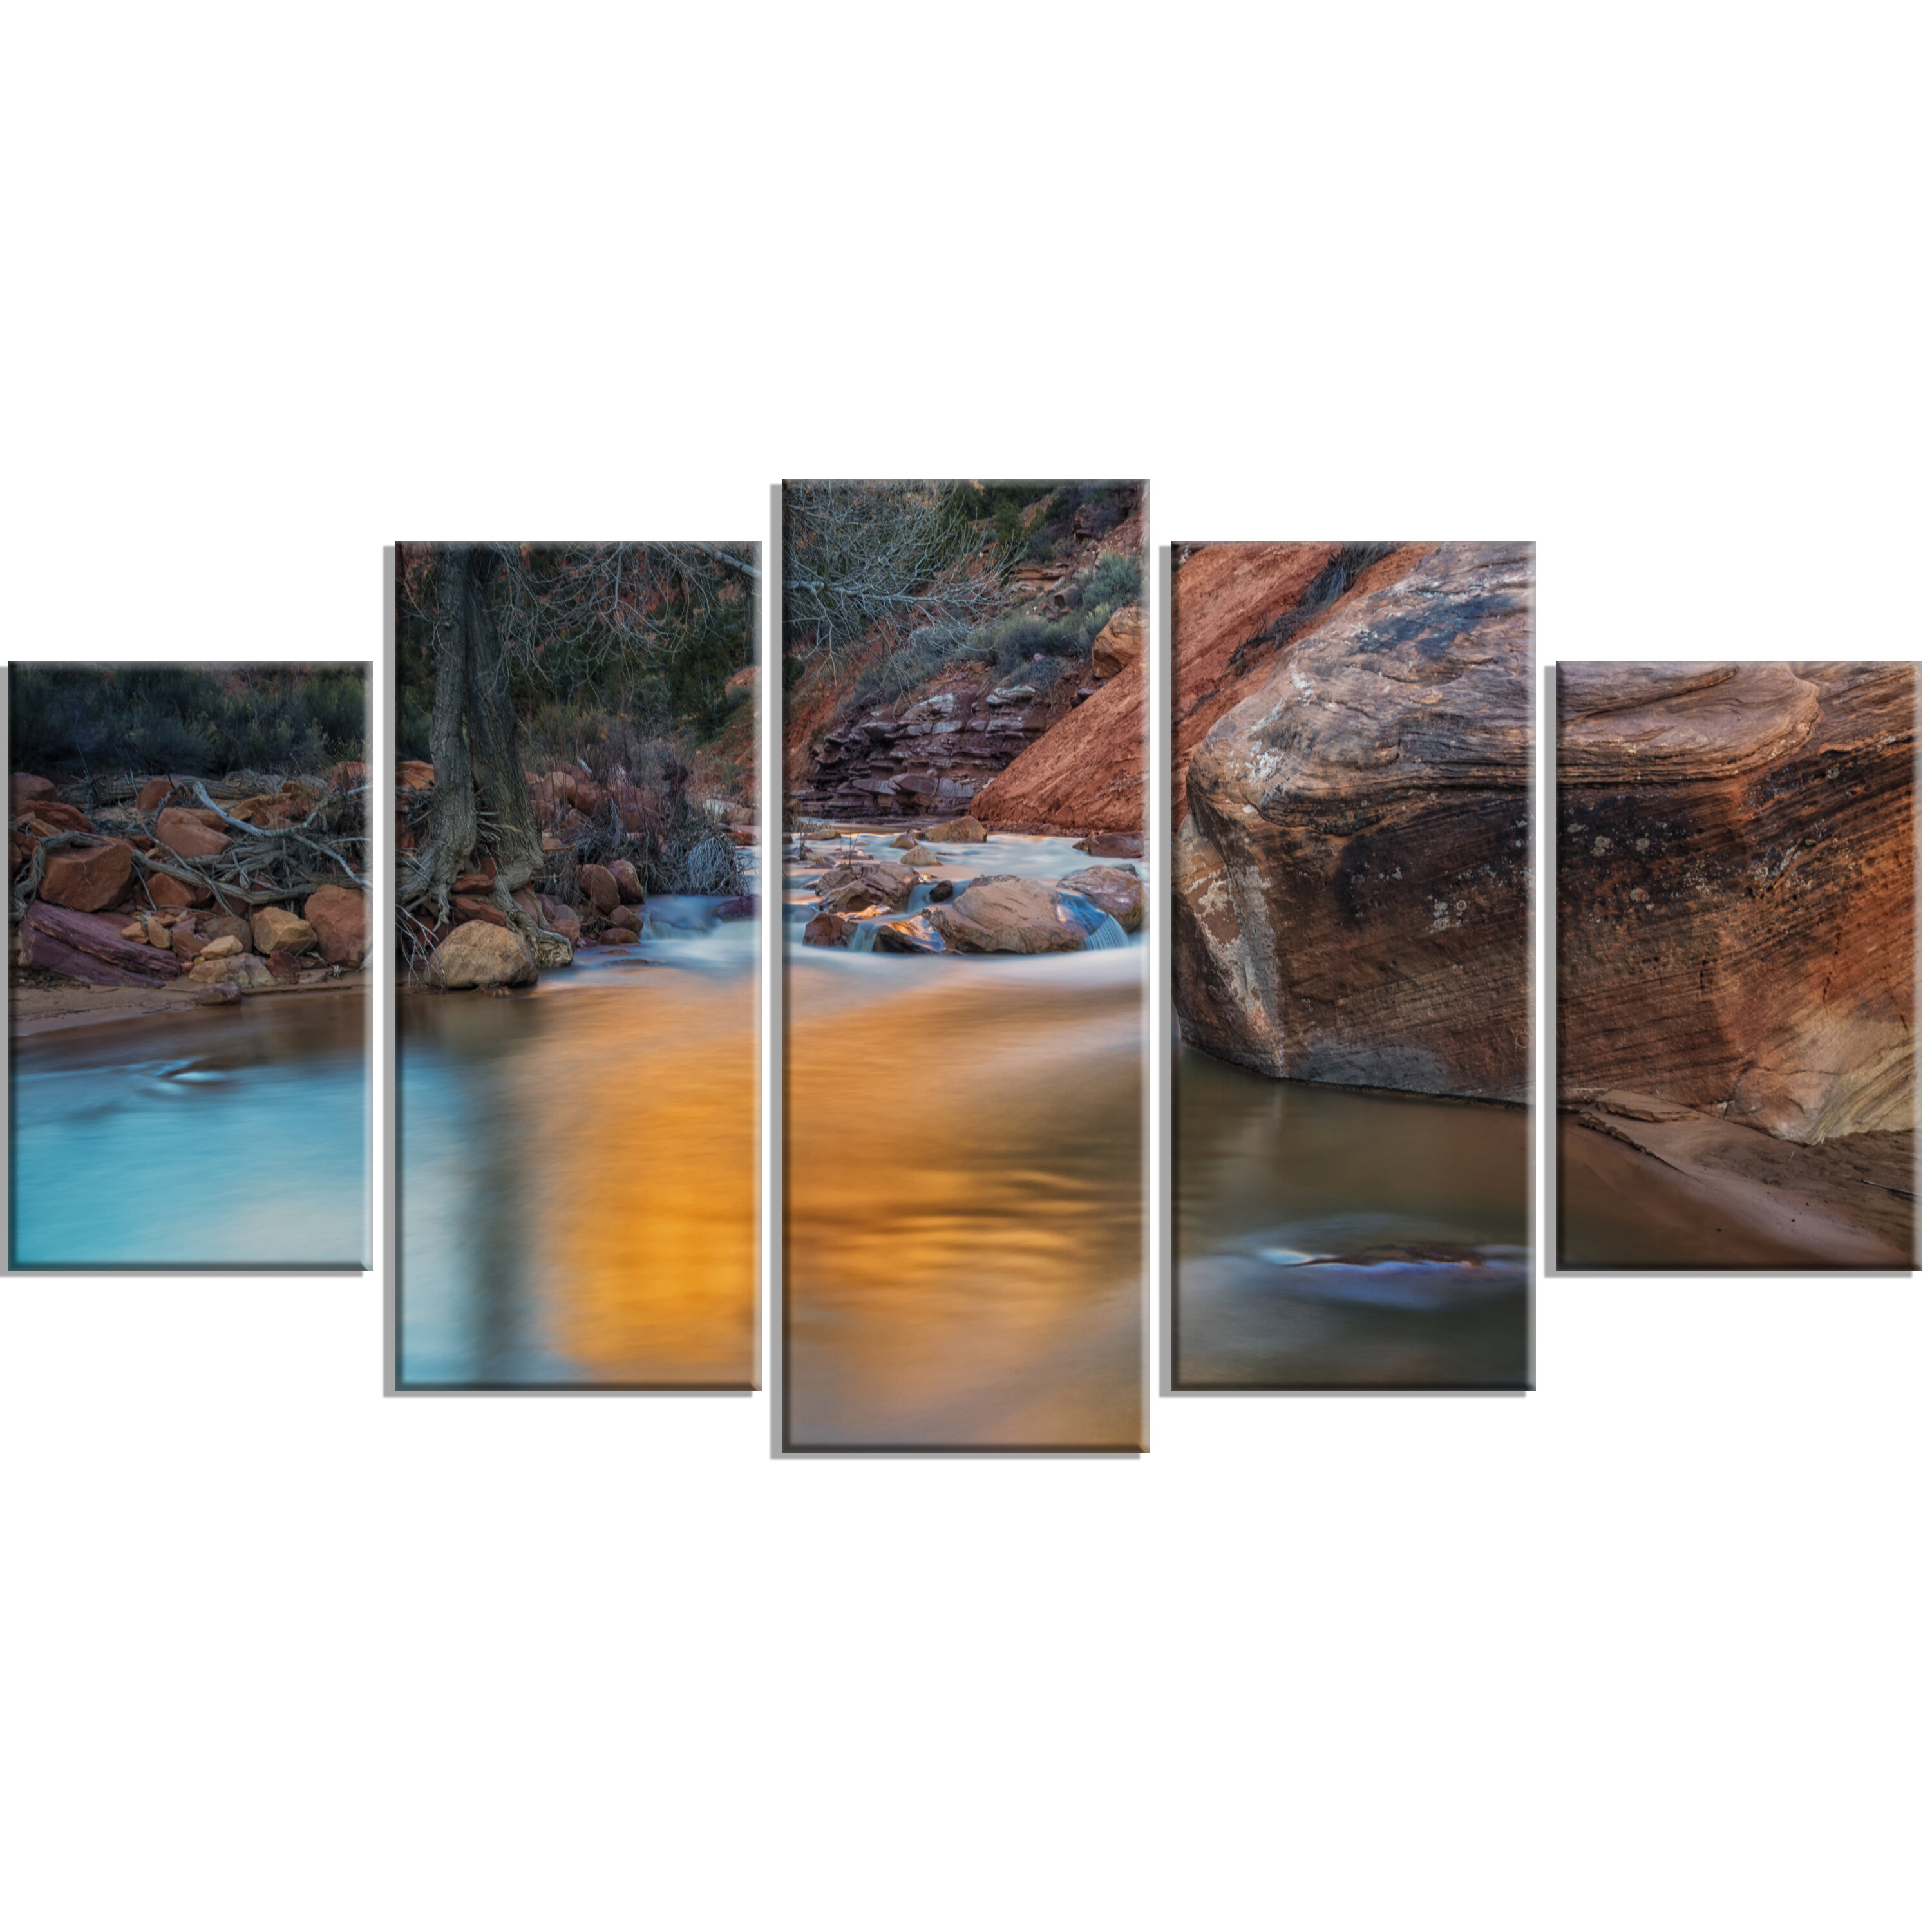 Designart Slow Motion Virgin River At Zion 5 Piece Wall Art On Wrapped Canvas Set Wayfair